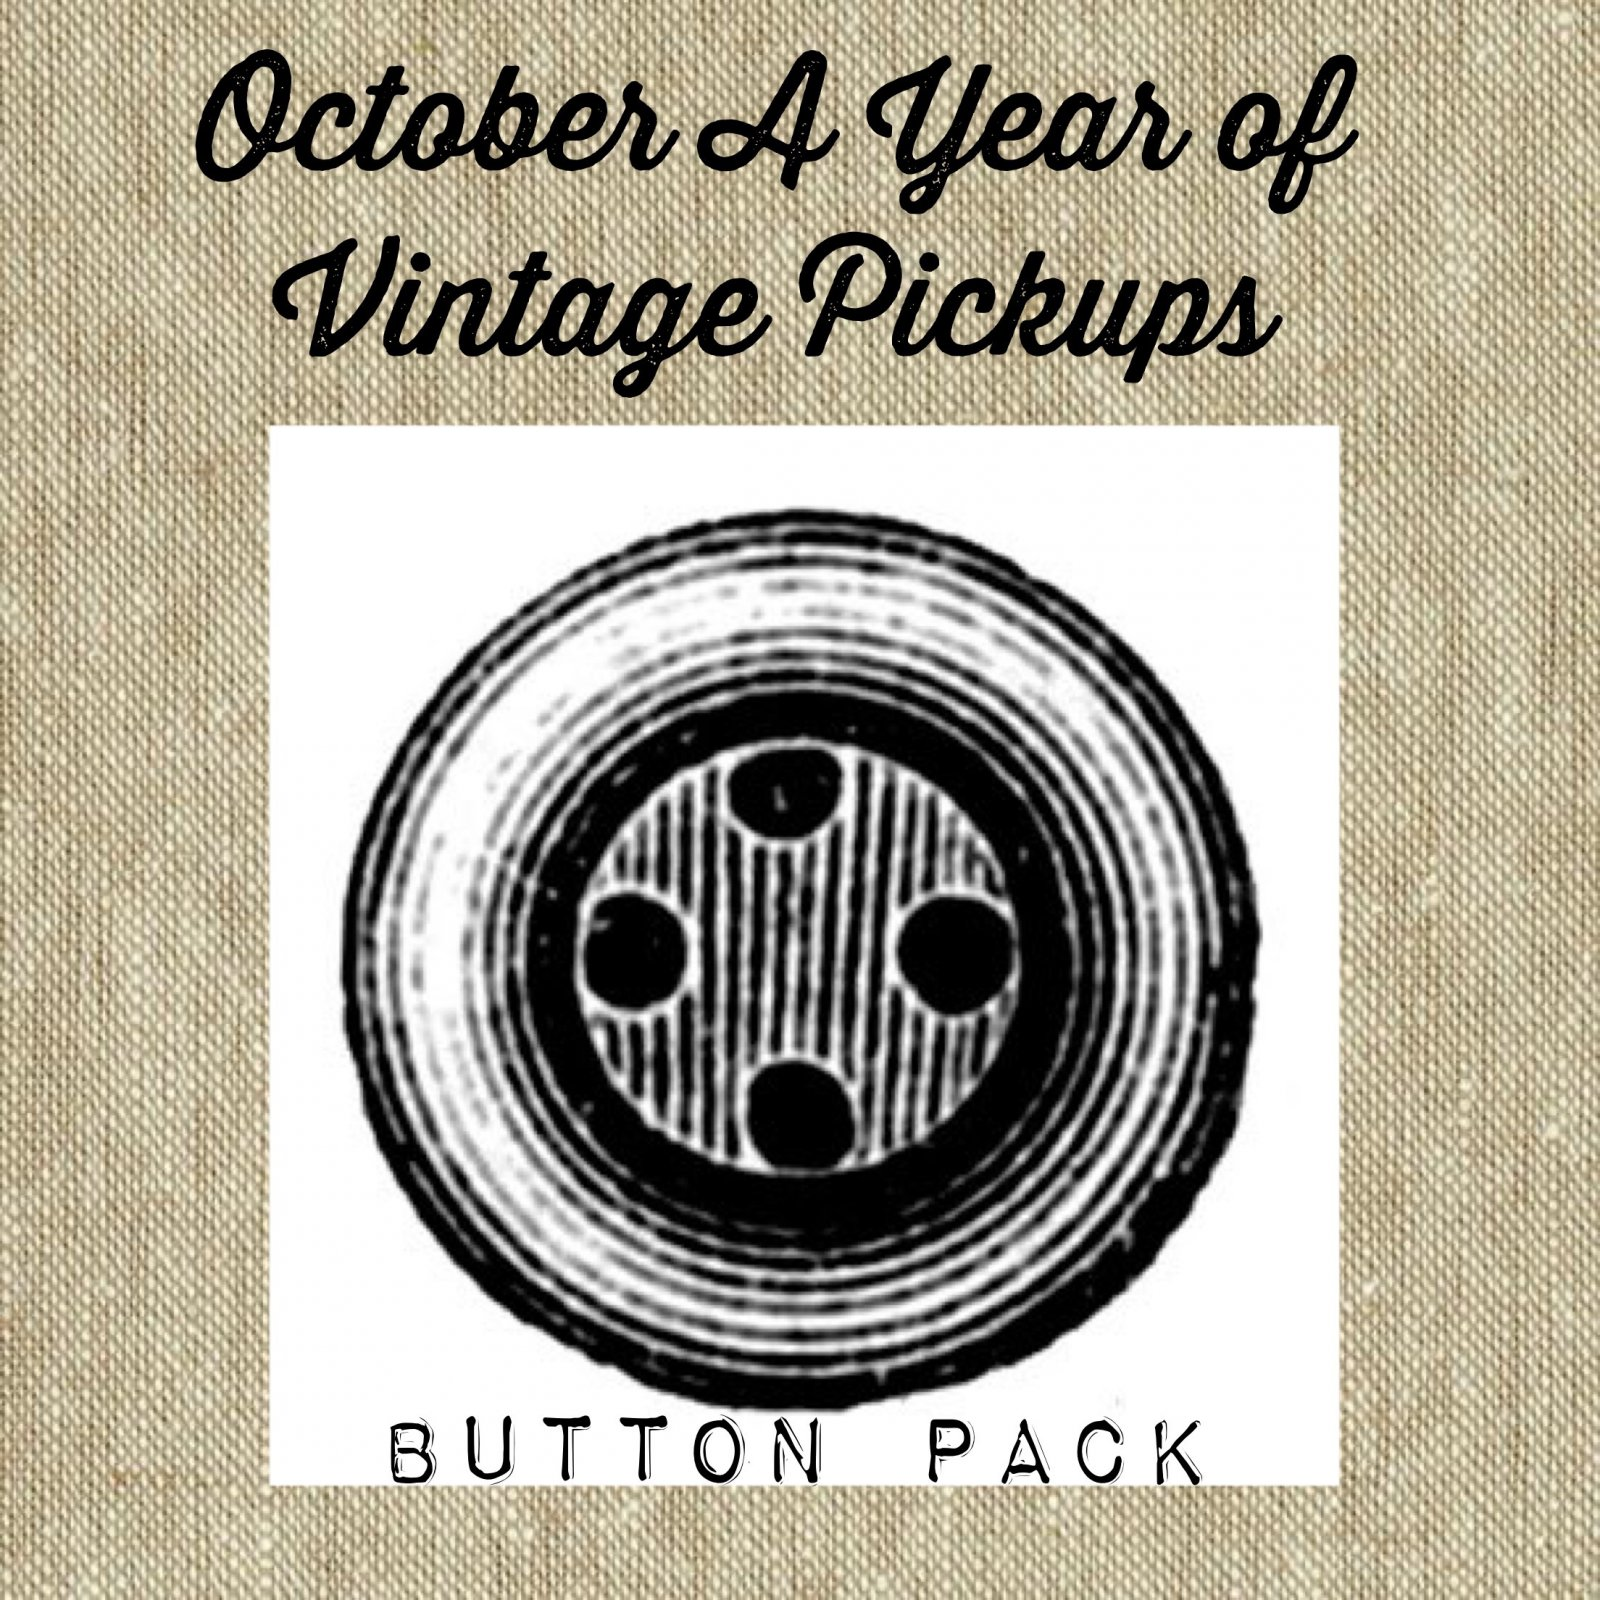 A Year of Vintage Pickups * October Button Pack